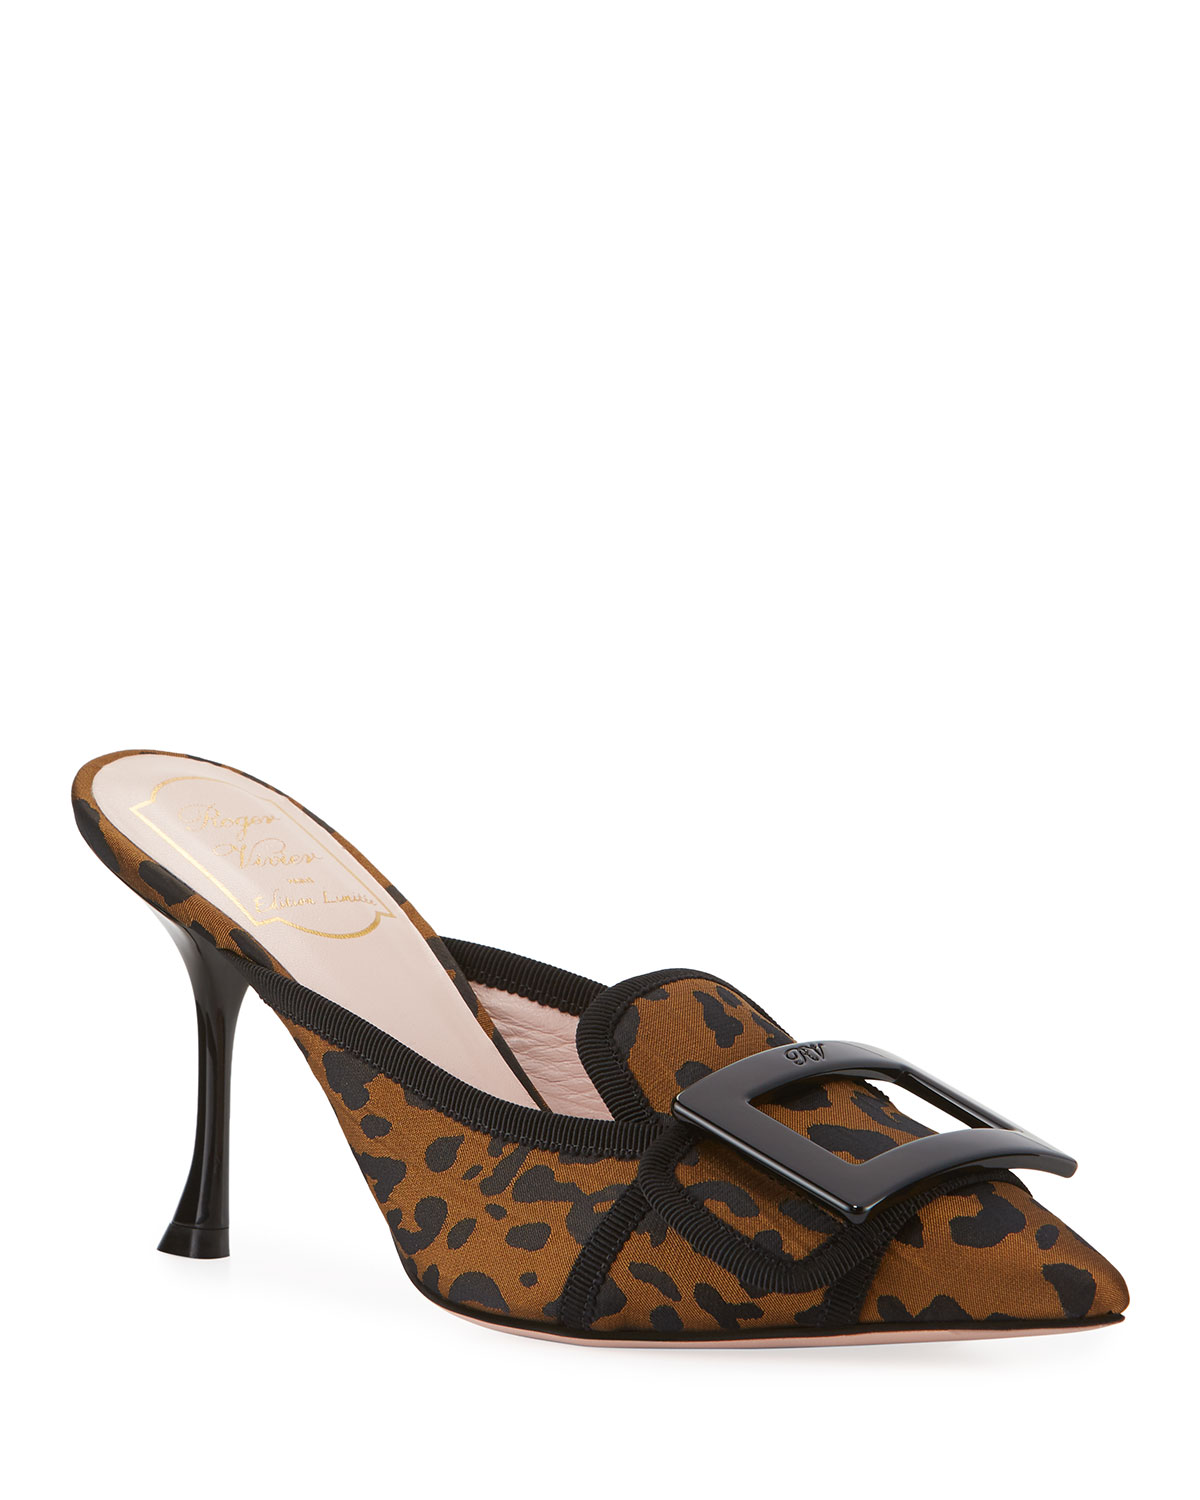 Leopard-Print Mules with Resin Buckle